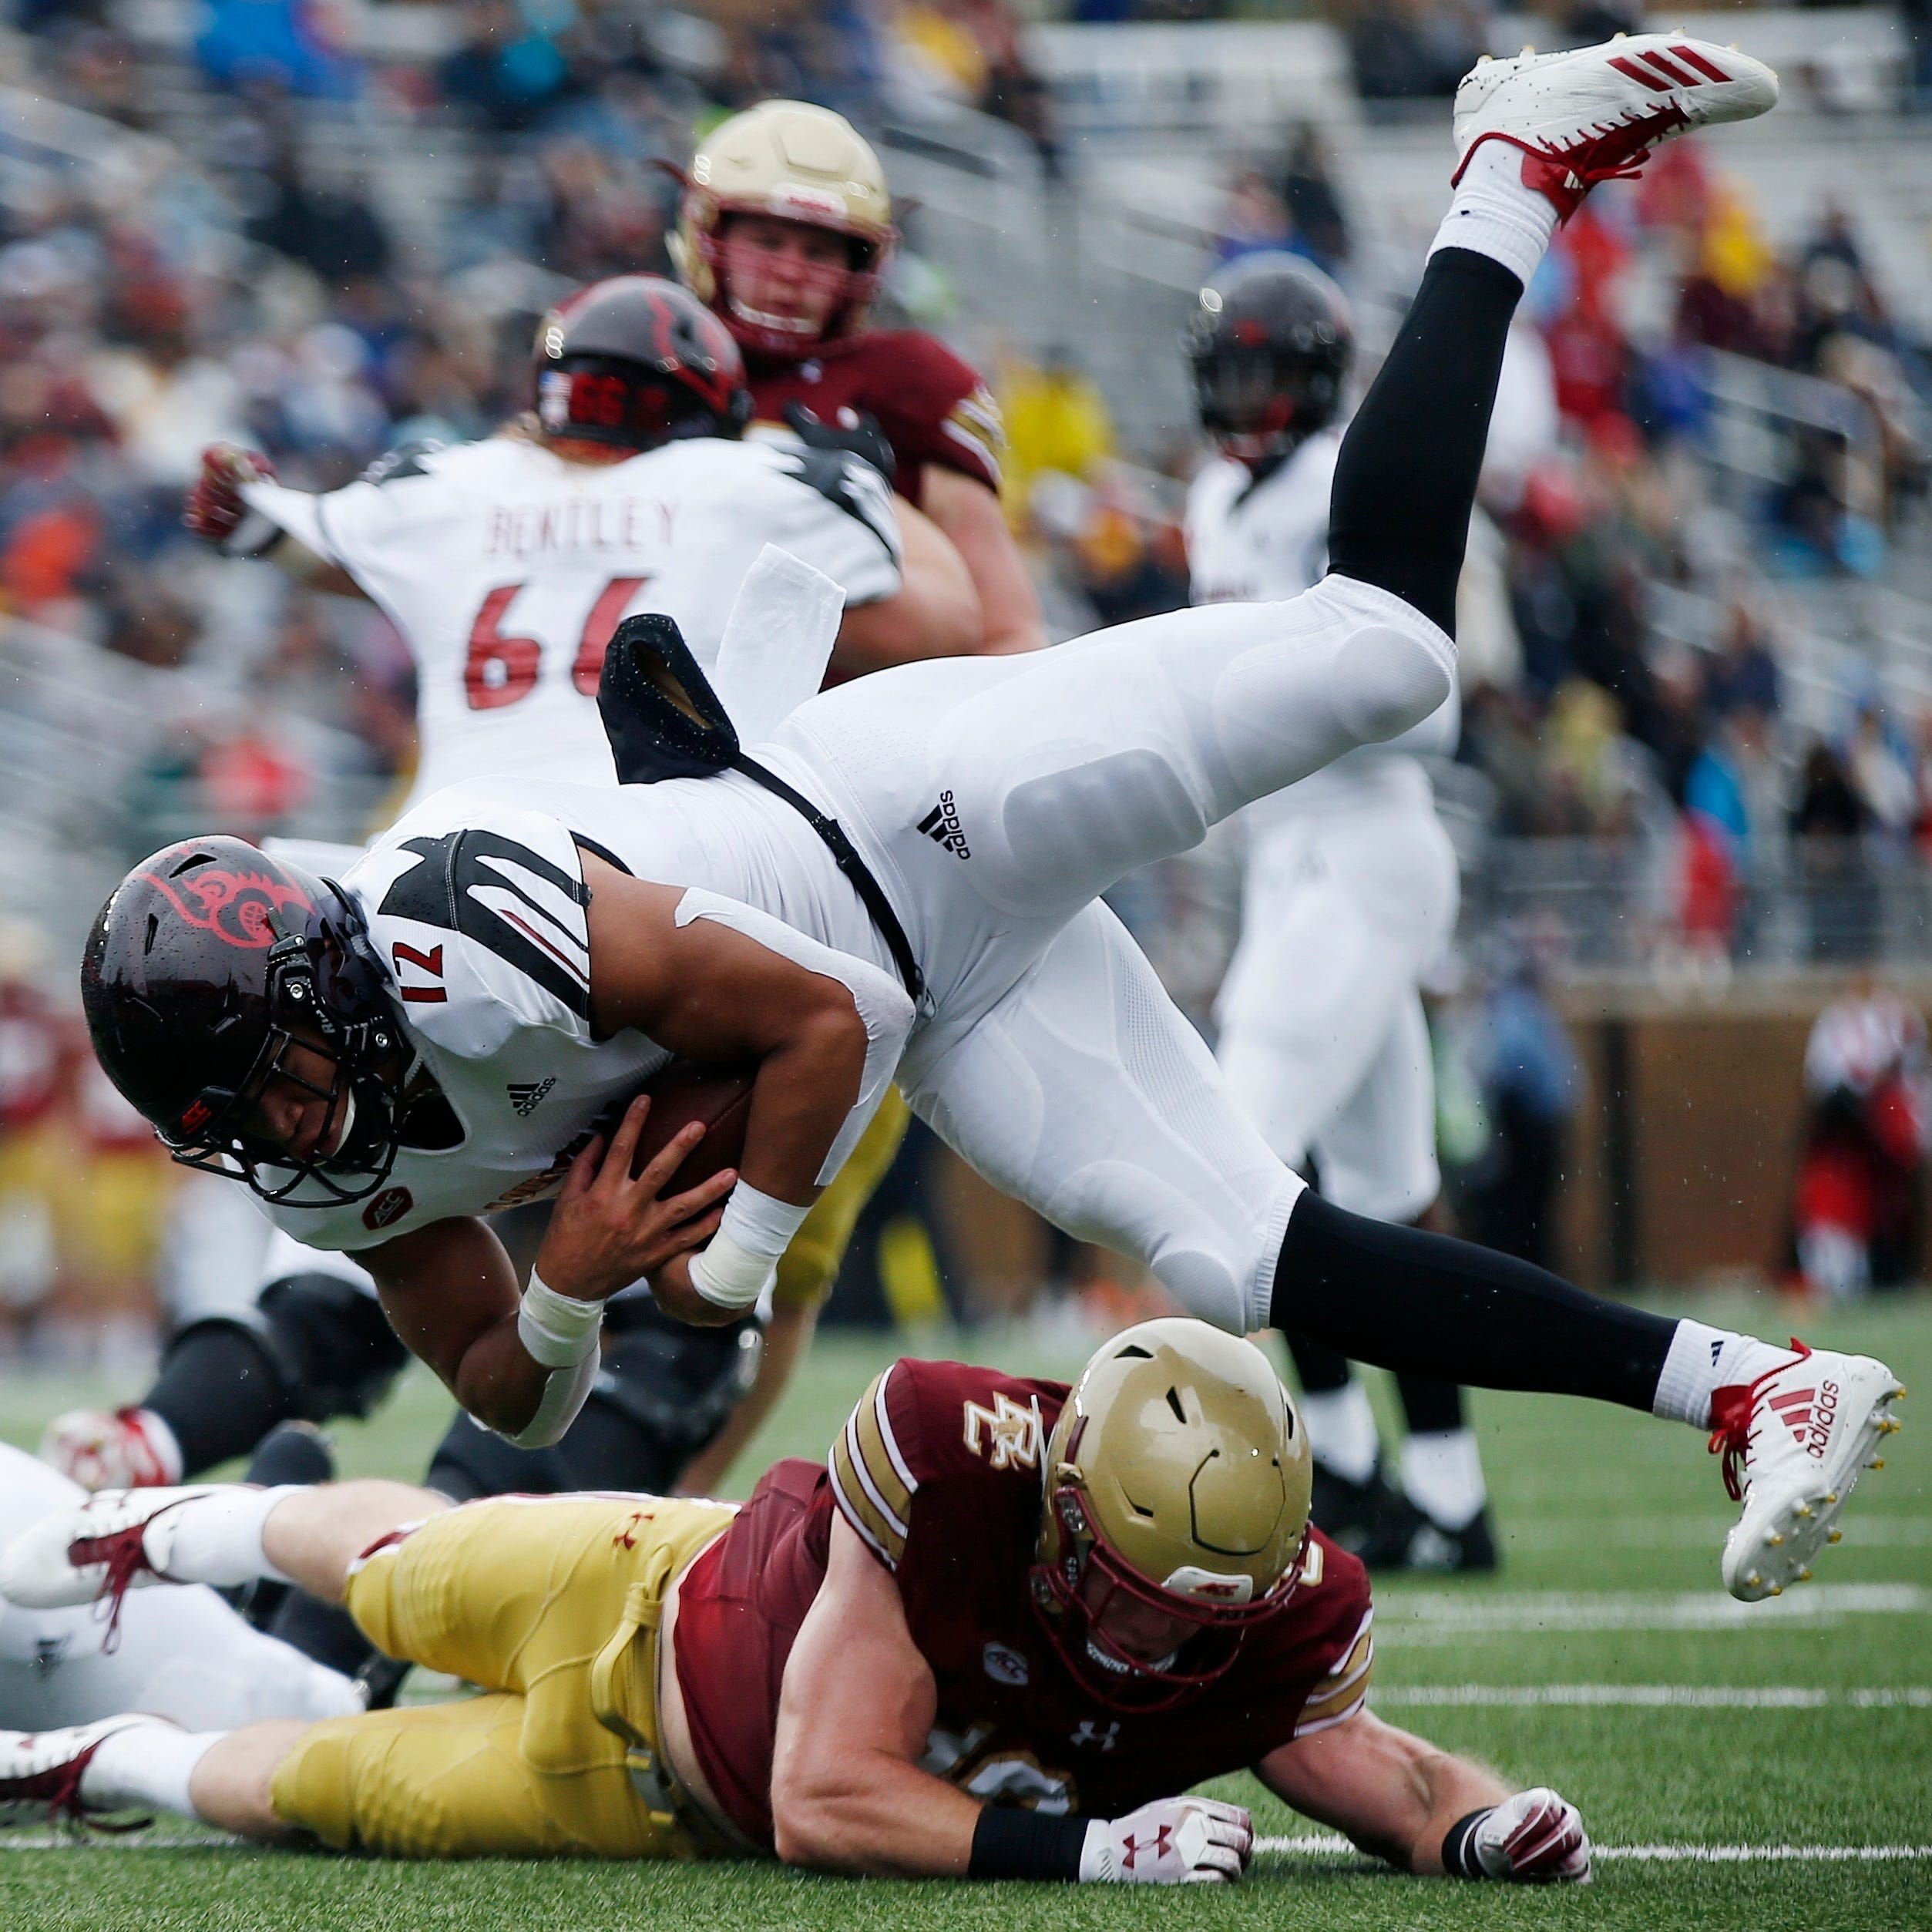 Louisville running out of answers and time after loss to Boston College